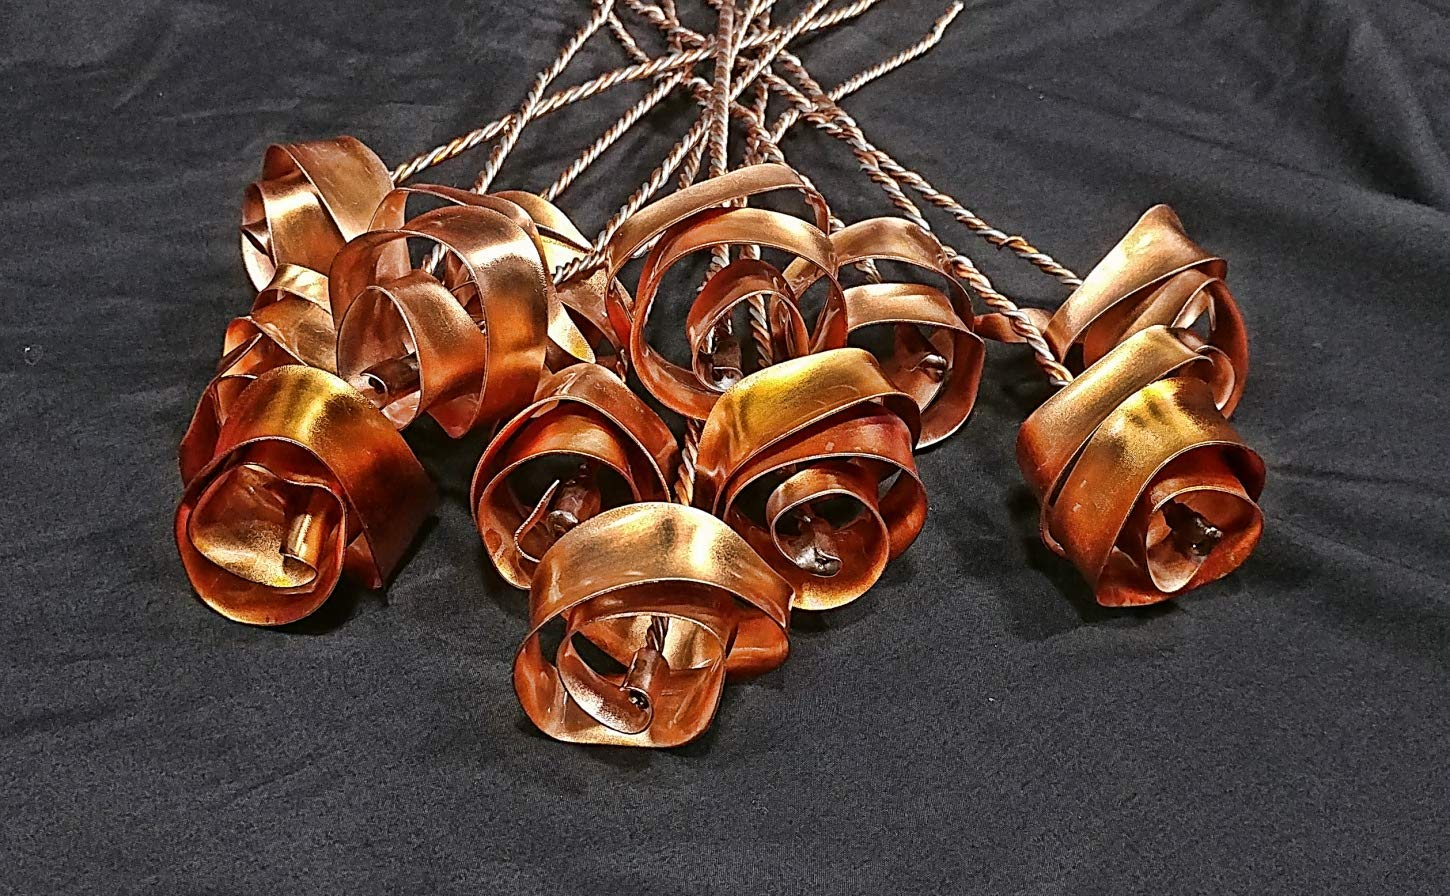 Set of 3 Bright Copper Forever Roses #813'' I Love You'' Steampunk - Wedding Prom Graduation 7th Anniversary Regalo de Aniversario Hanukkah Kwanzaa Valentine's Mother's Day Christmas Gift ! by Refreshing Art (Image #7)